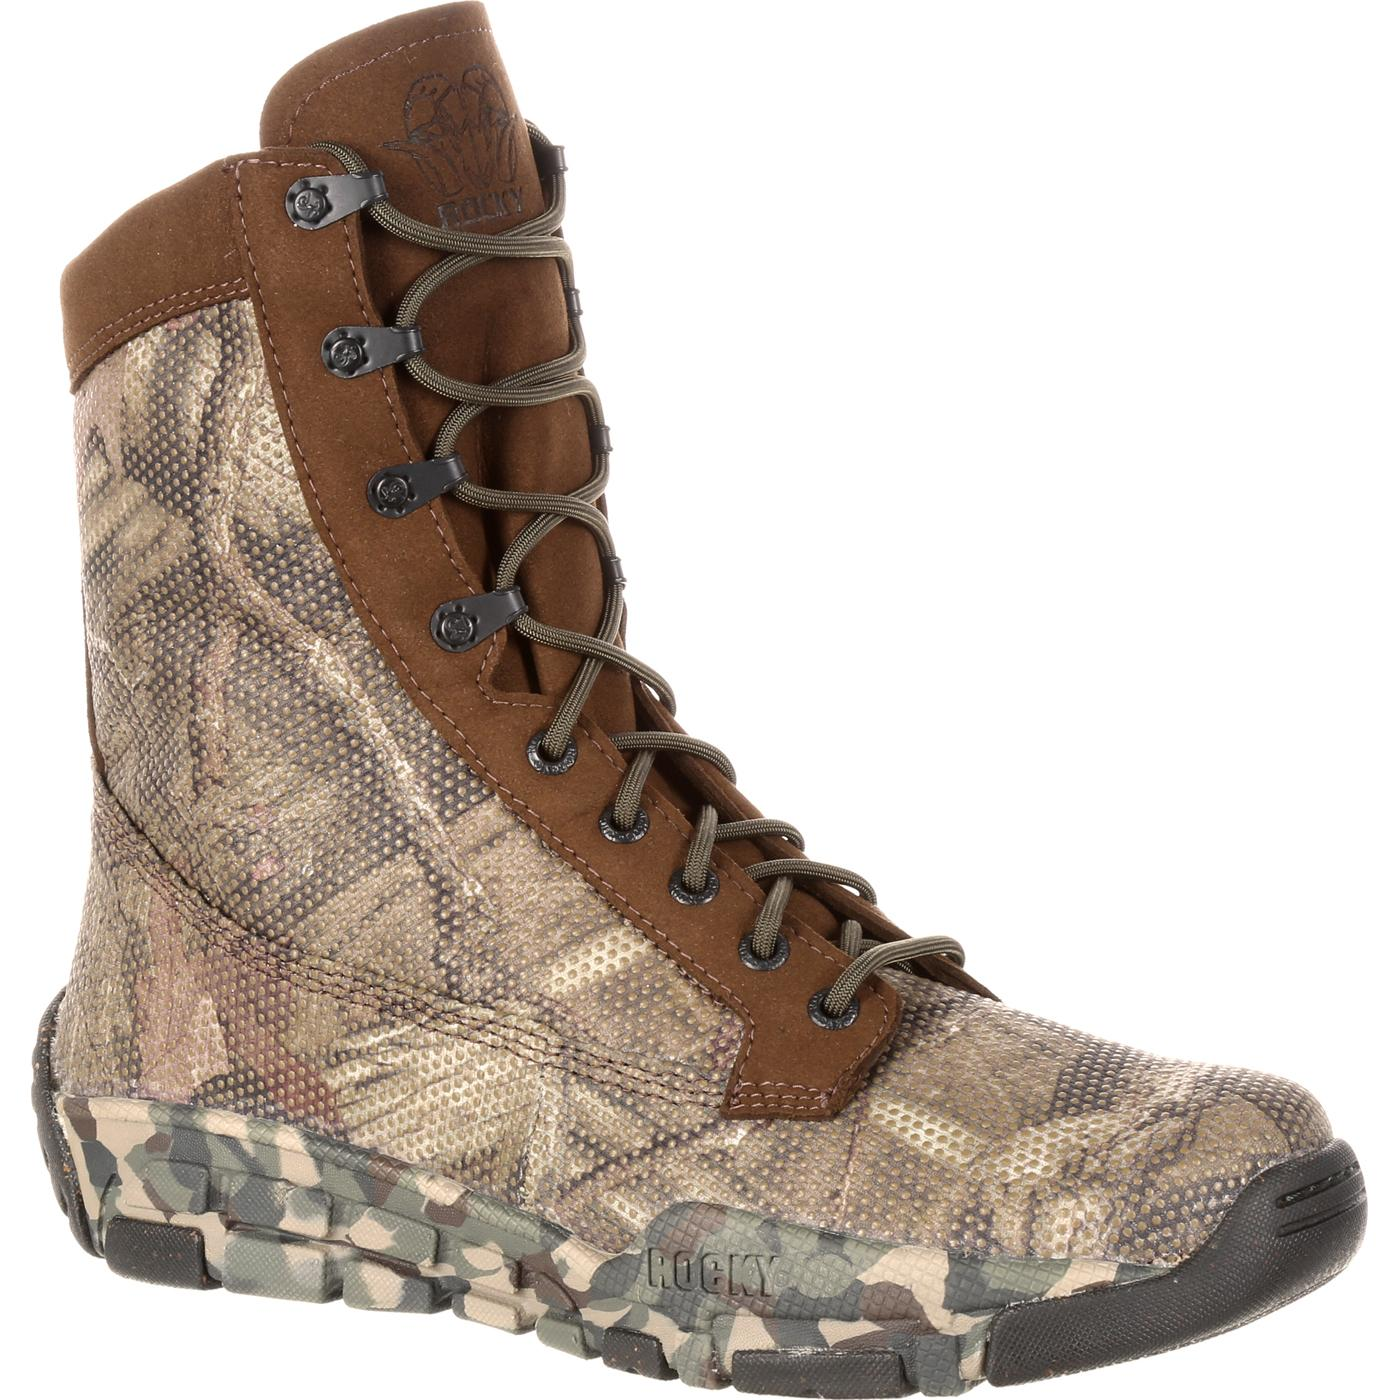 Men S Camouflage Hunting Boot Rocky Boot Style Rks0155ia